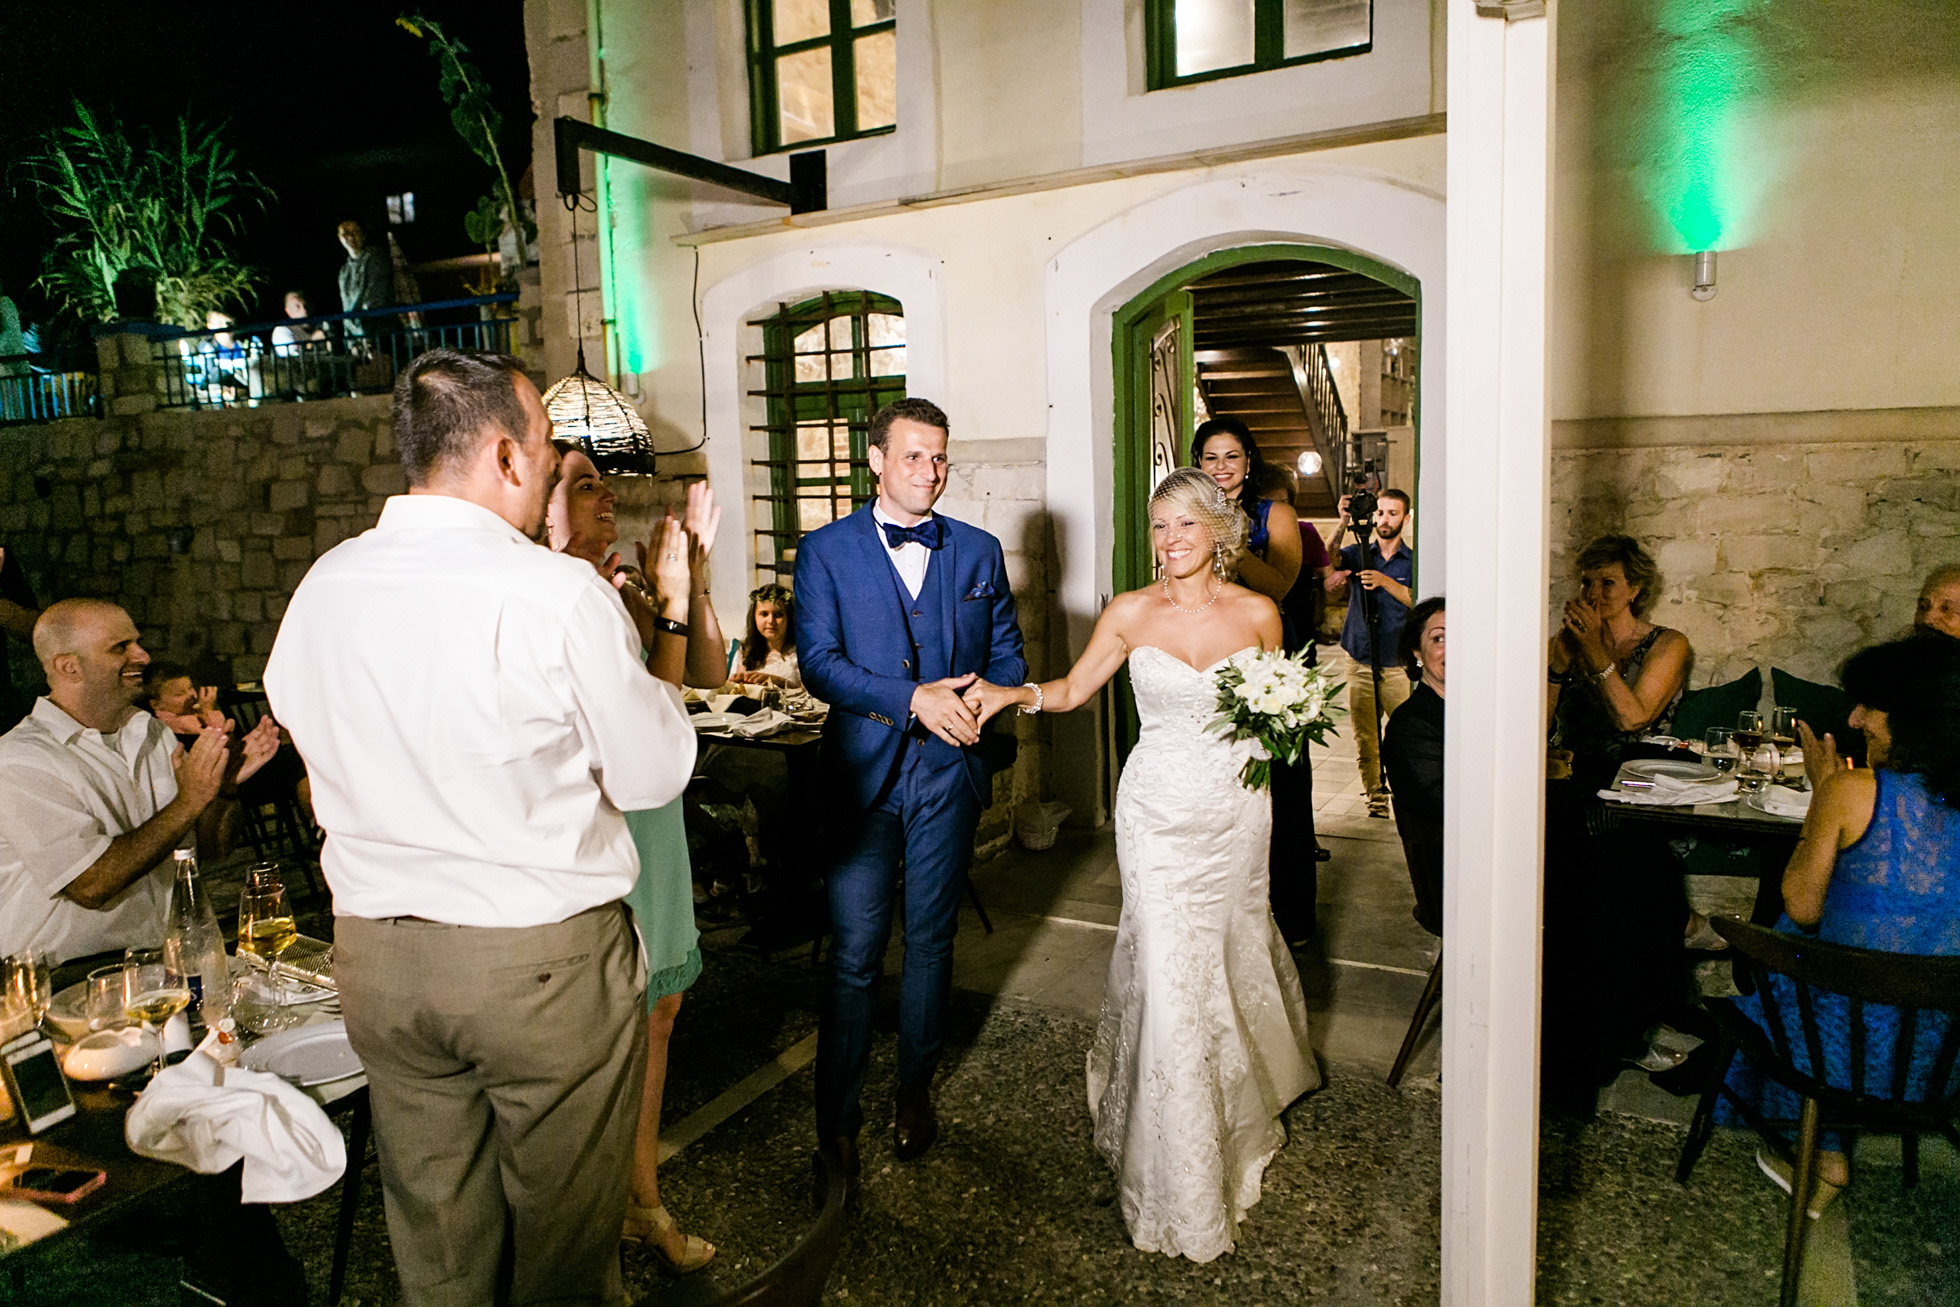 Destination wedding reception image of a restaurant wedding dinner including bride and groom's great entrance, cake cut, speeches and first dance. Captured by professional wedding photographer in Crete Greece.